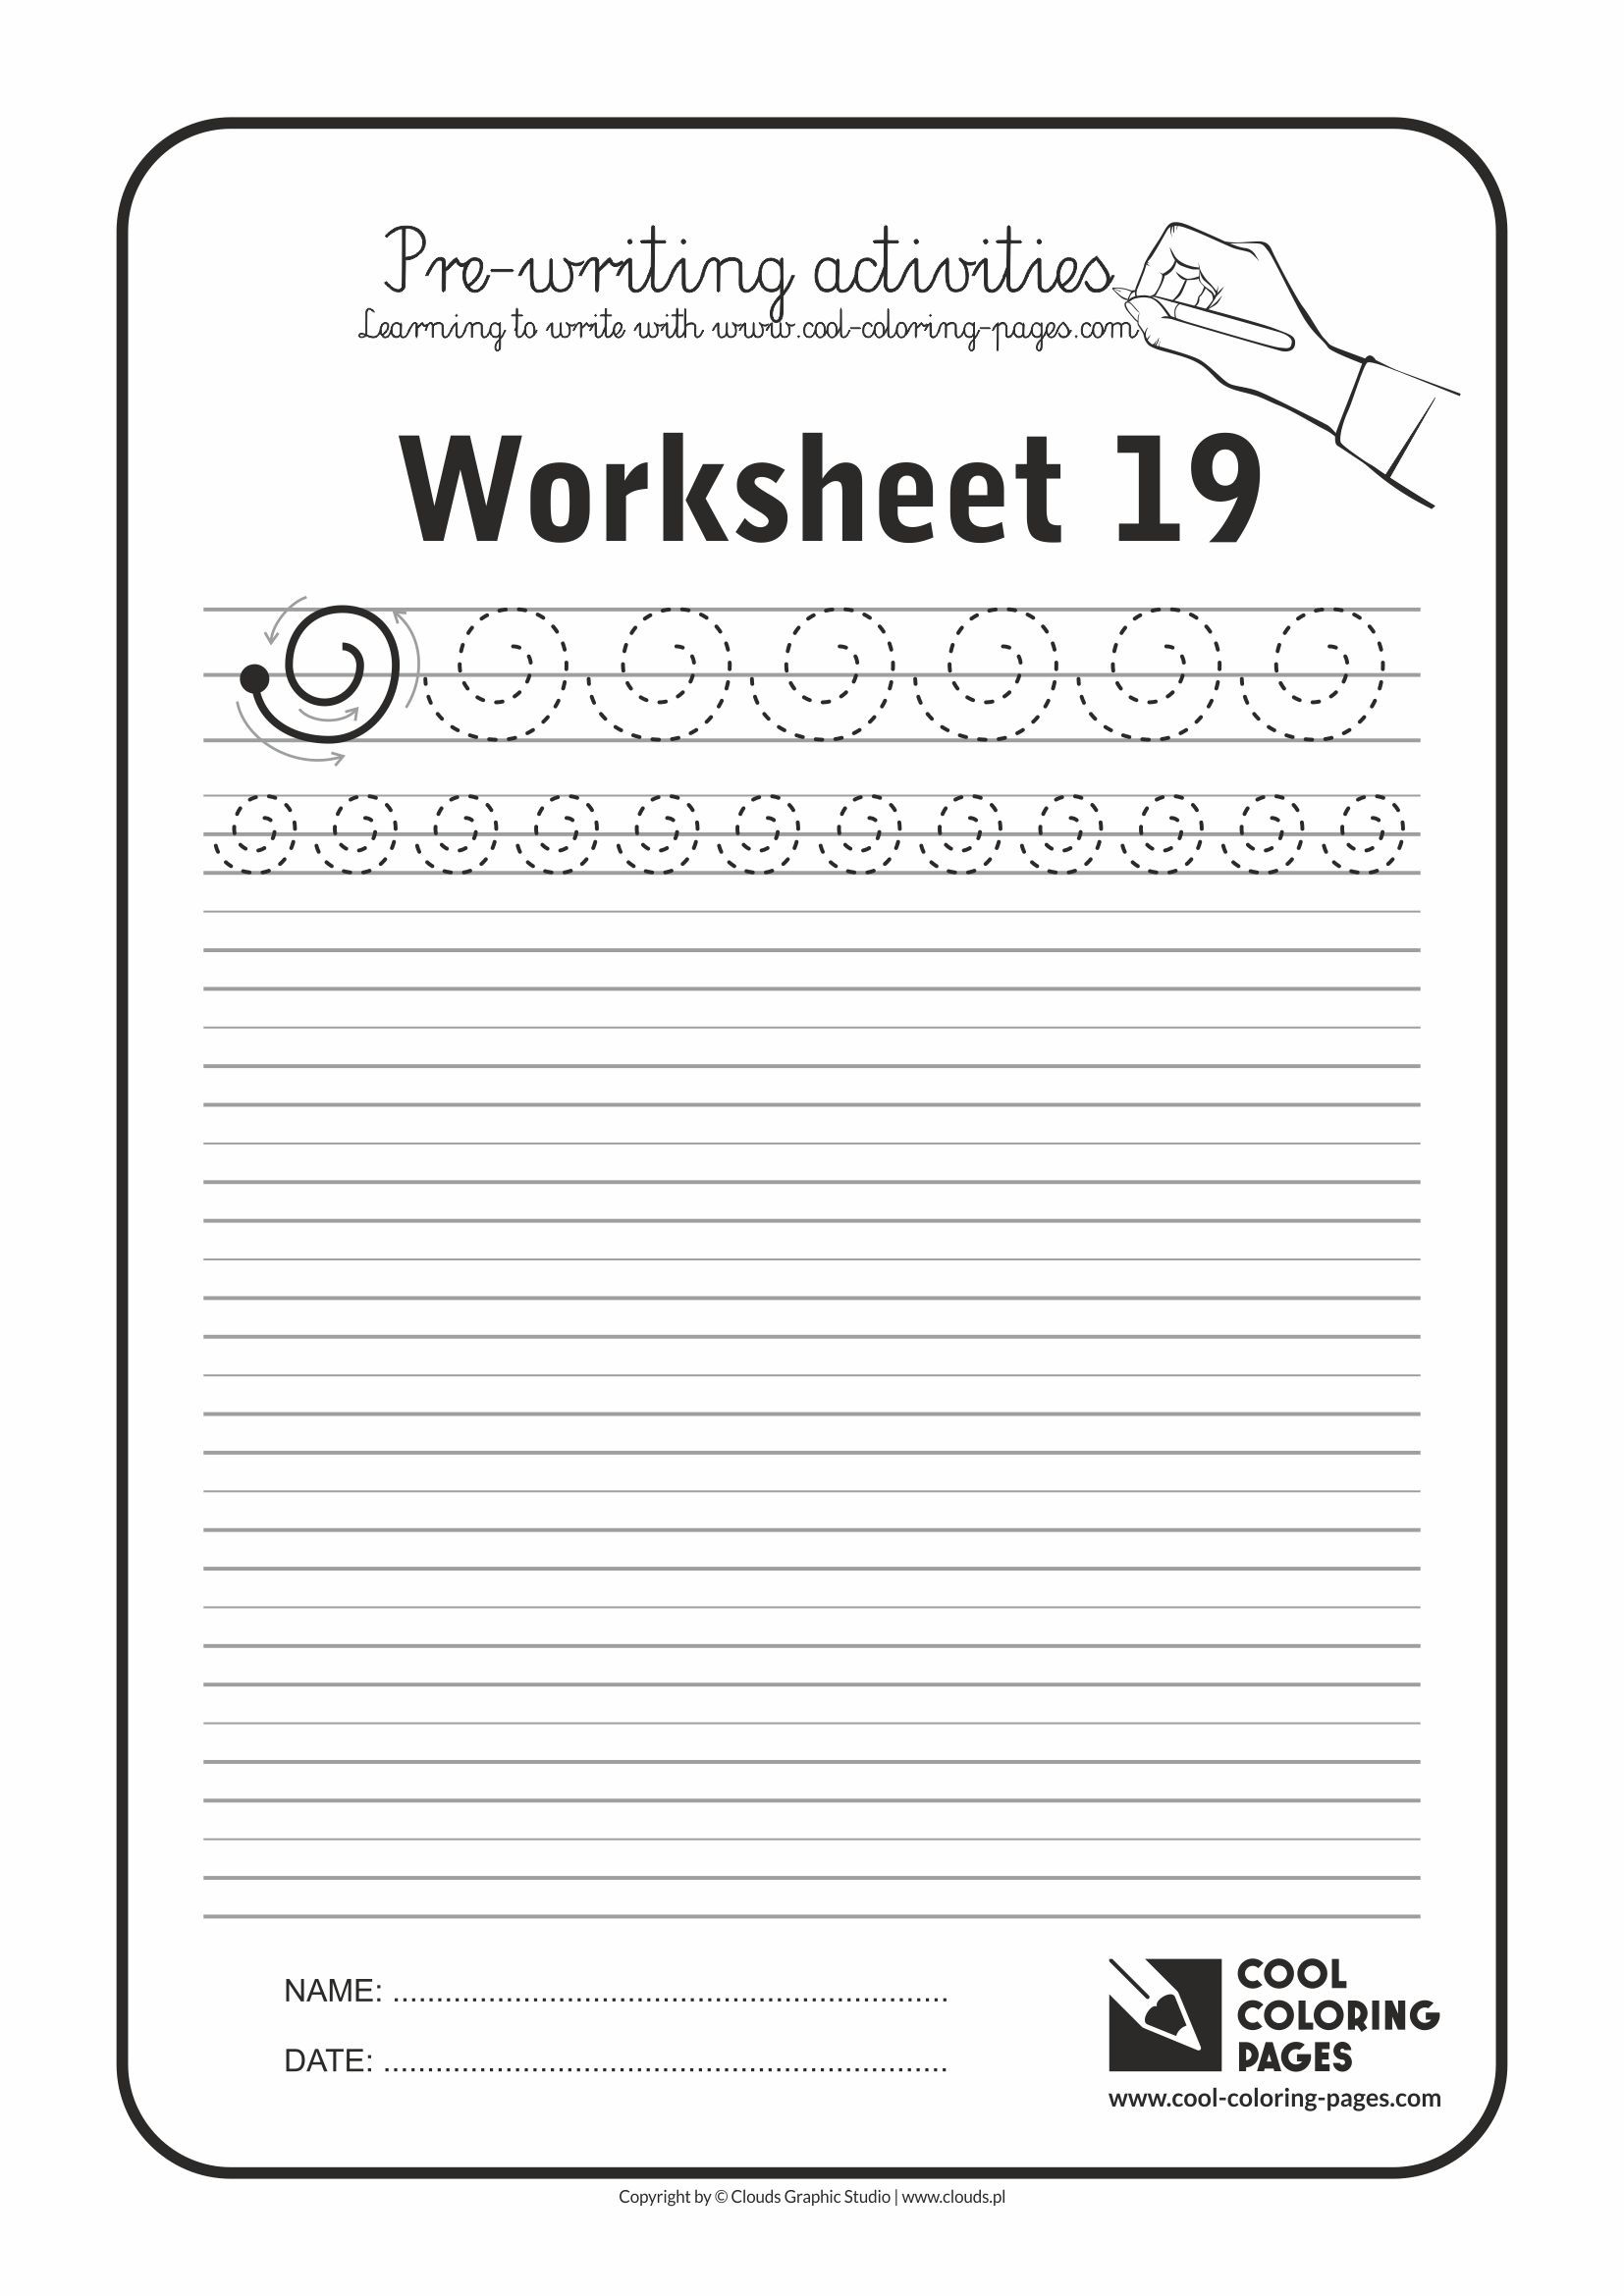 Cool Coloring Pages / Pre-writing activities / Worksheet no.19